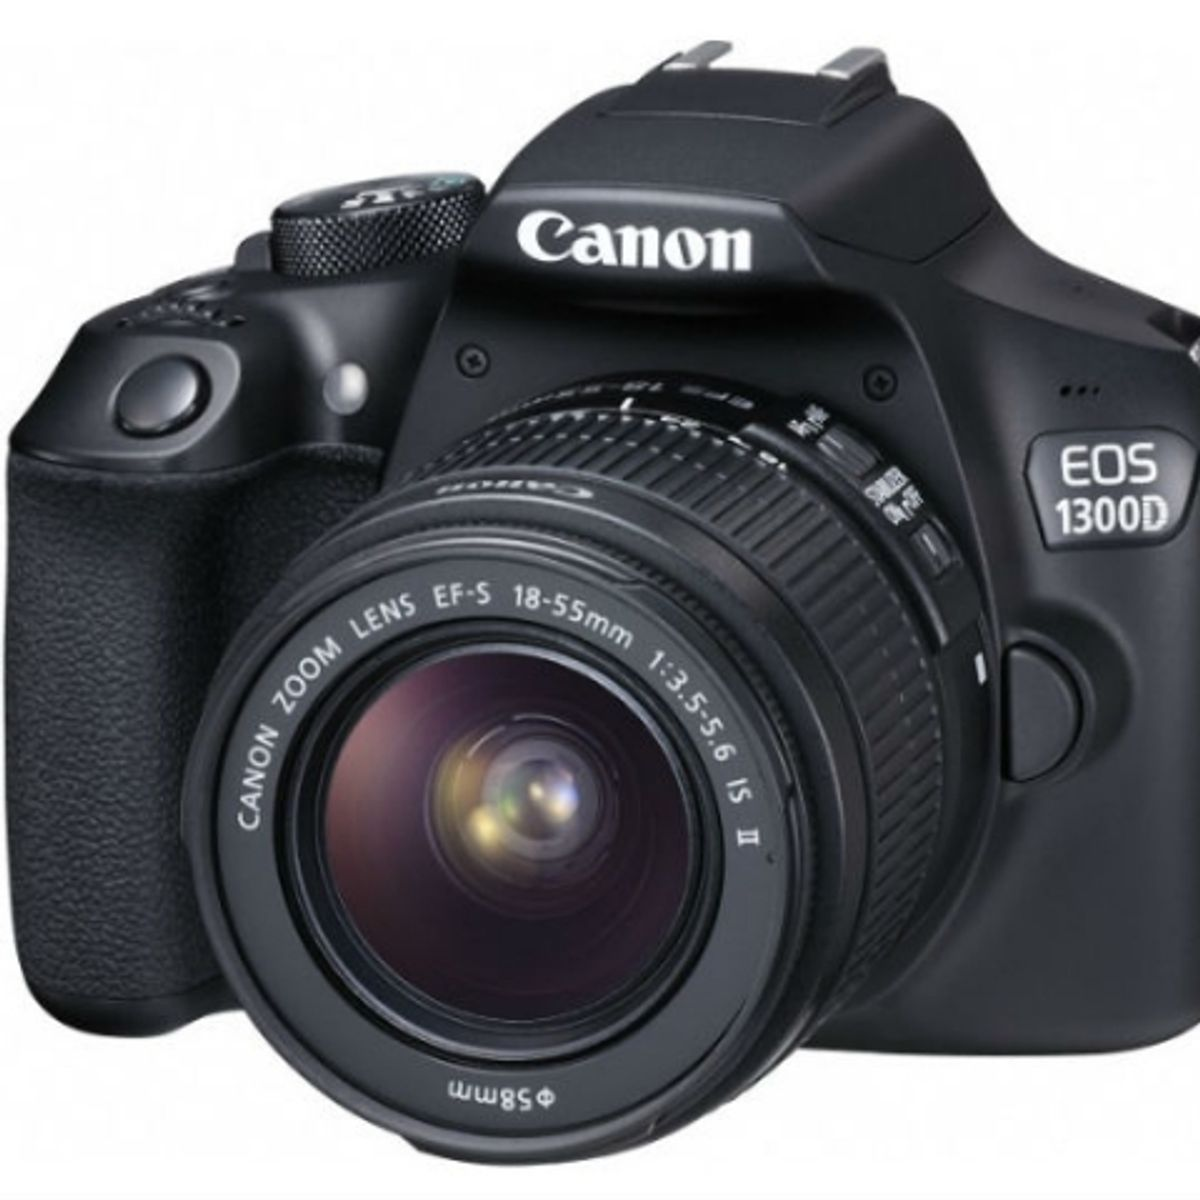 10 things you should know about the Canon EOS 1300D | Digit